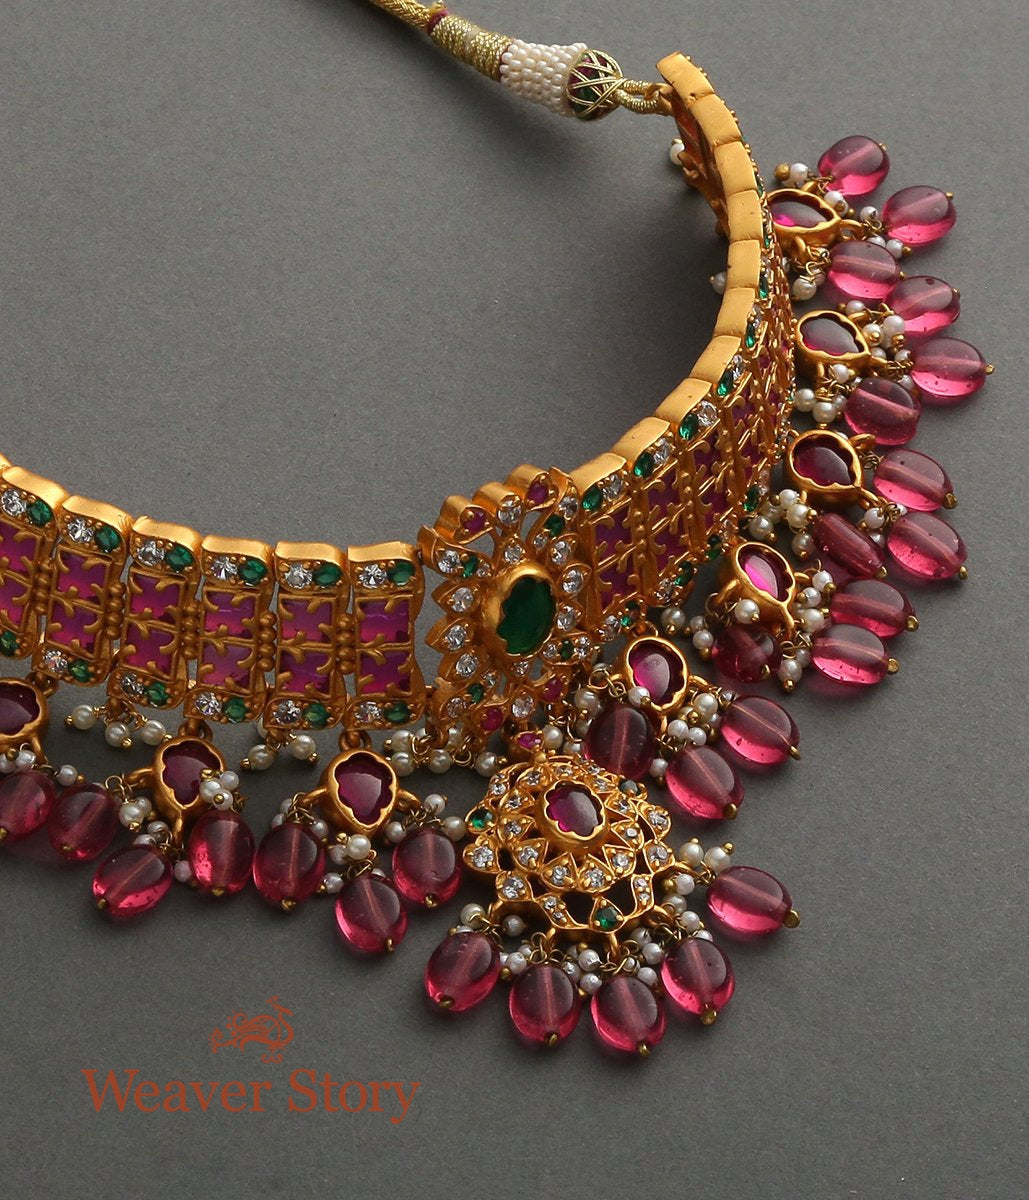 Golden Choker Necklace Red and Green Tourmalines